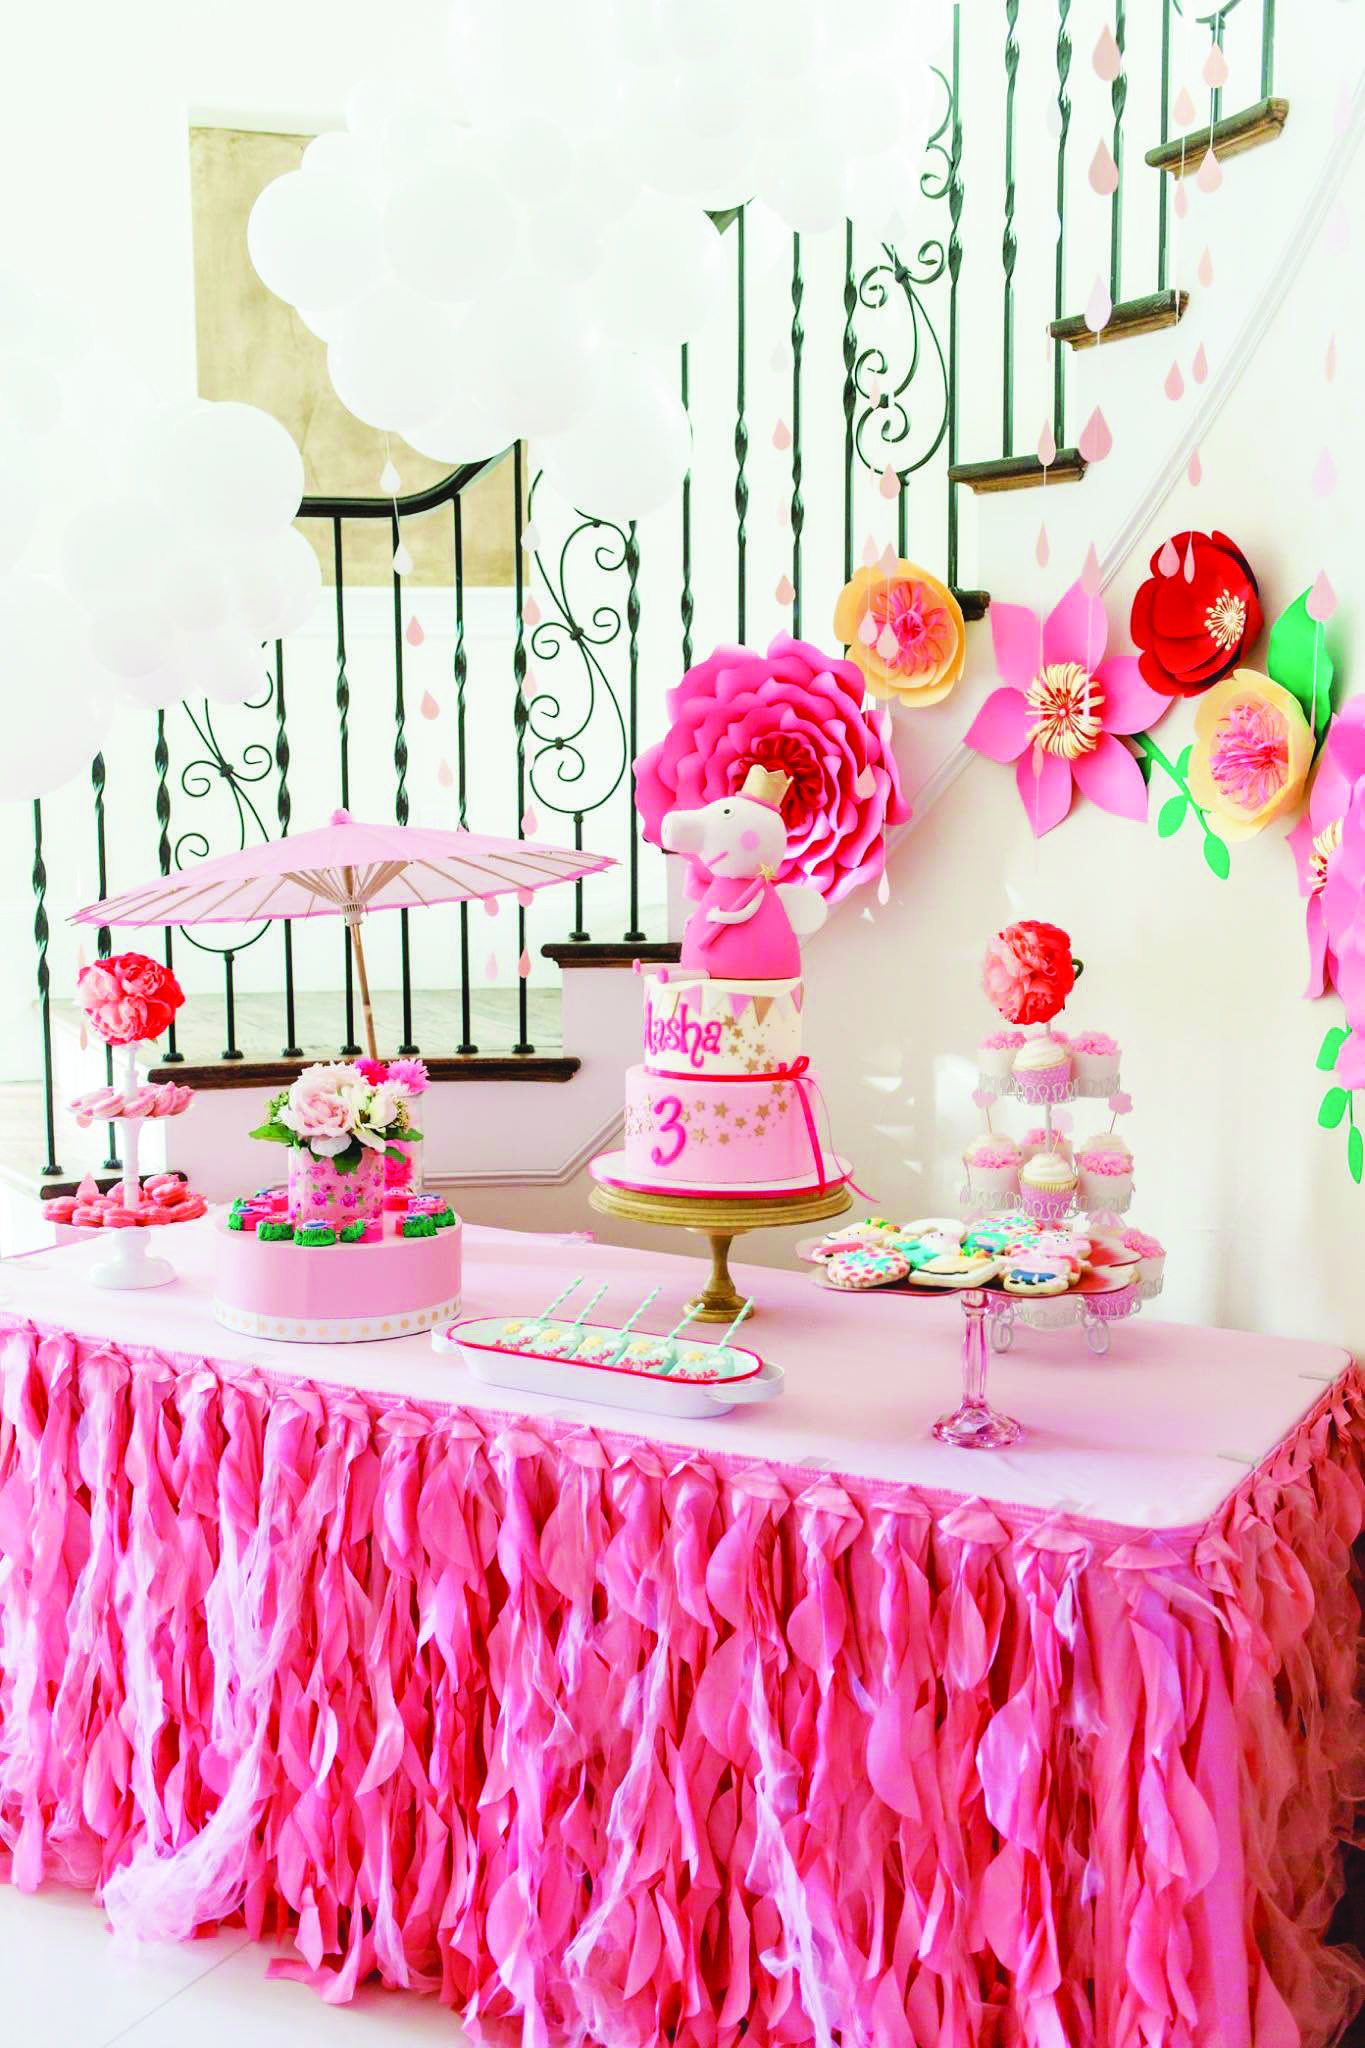 The Ultimate Peppa Pig Themed Birthday Party Dfwchild